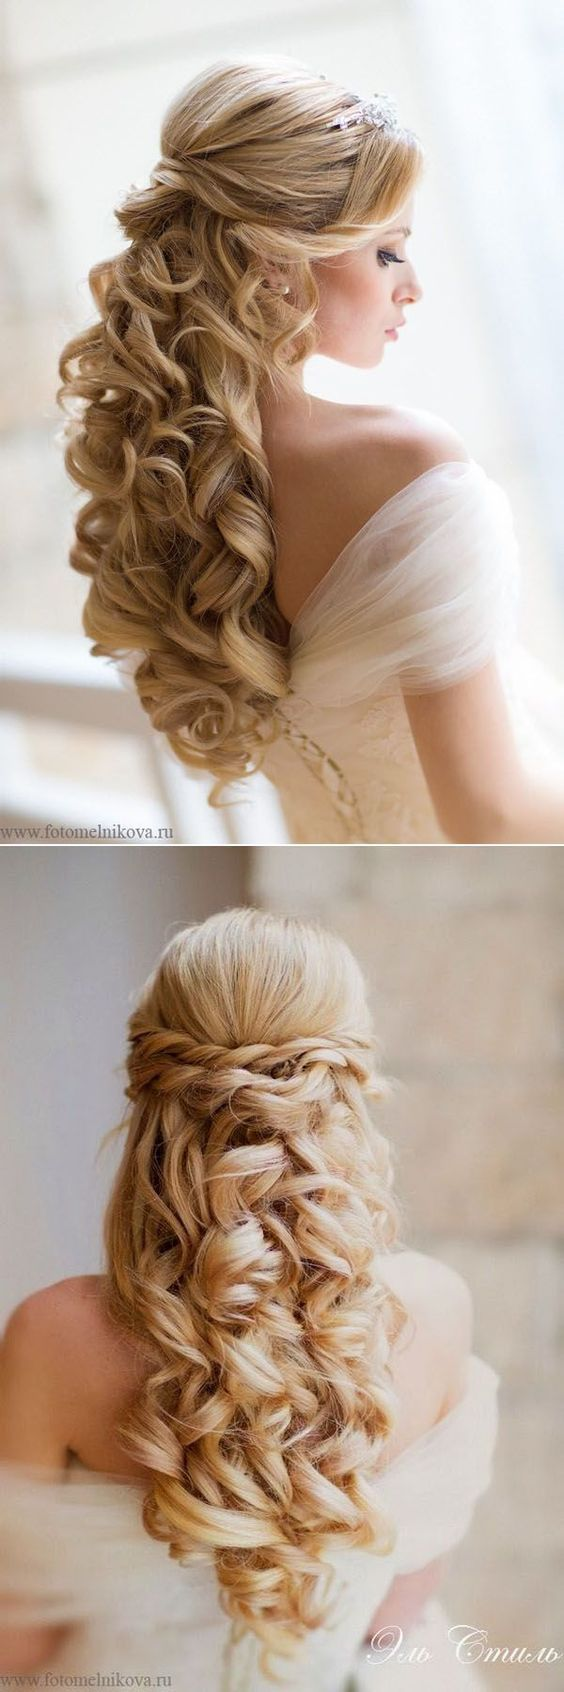 Awesome Half Up Half Down Wedding Hairstyle Ideas Loose curls